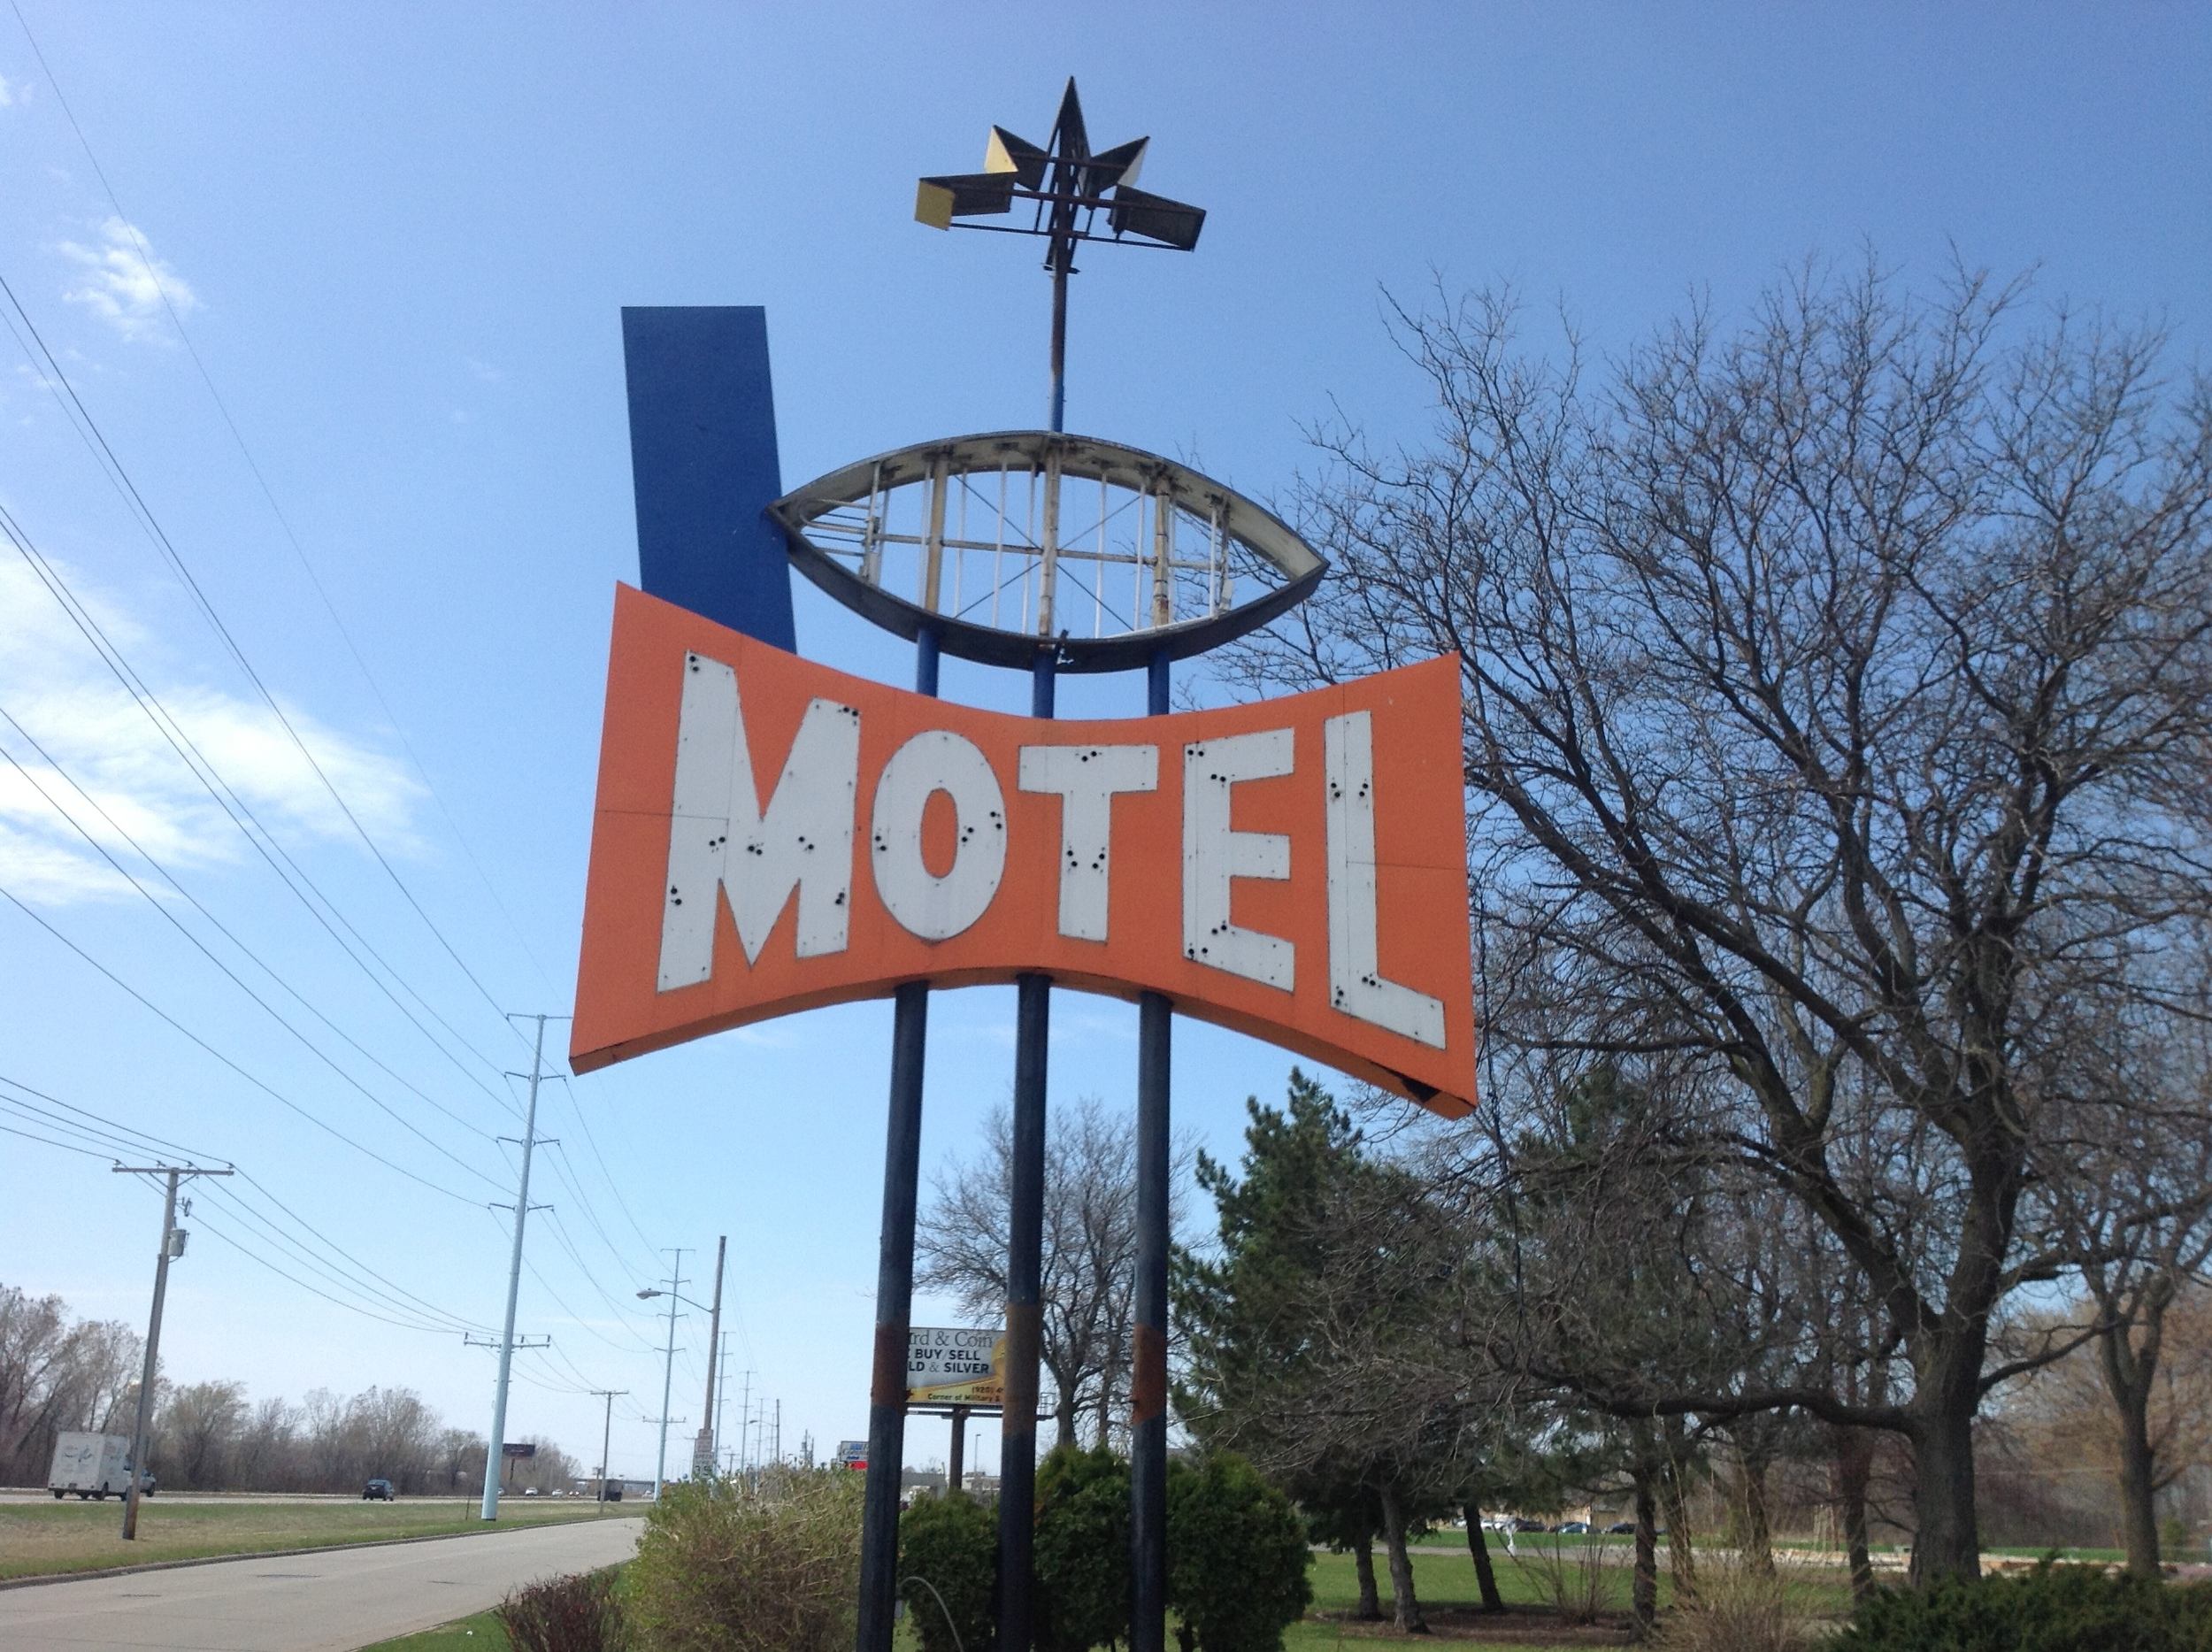 The Sky-lit Motel sign as it looks now.